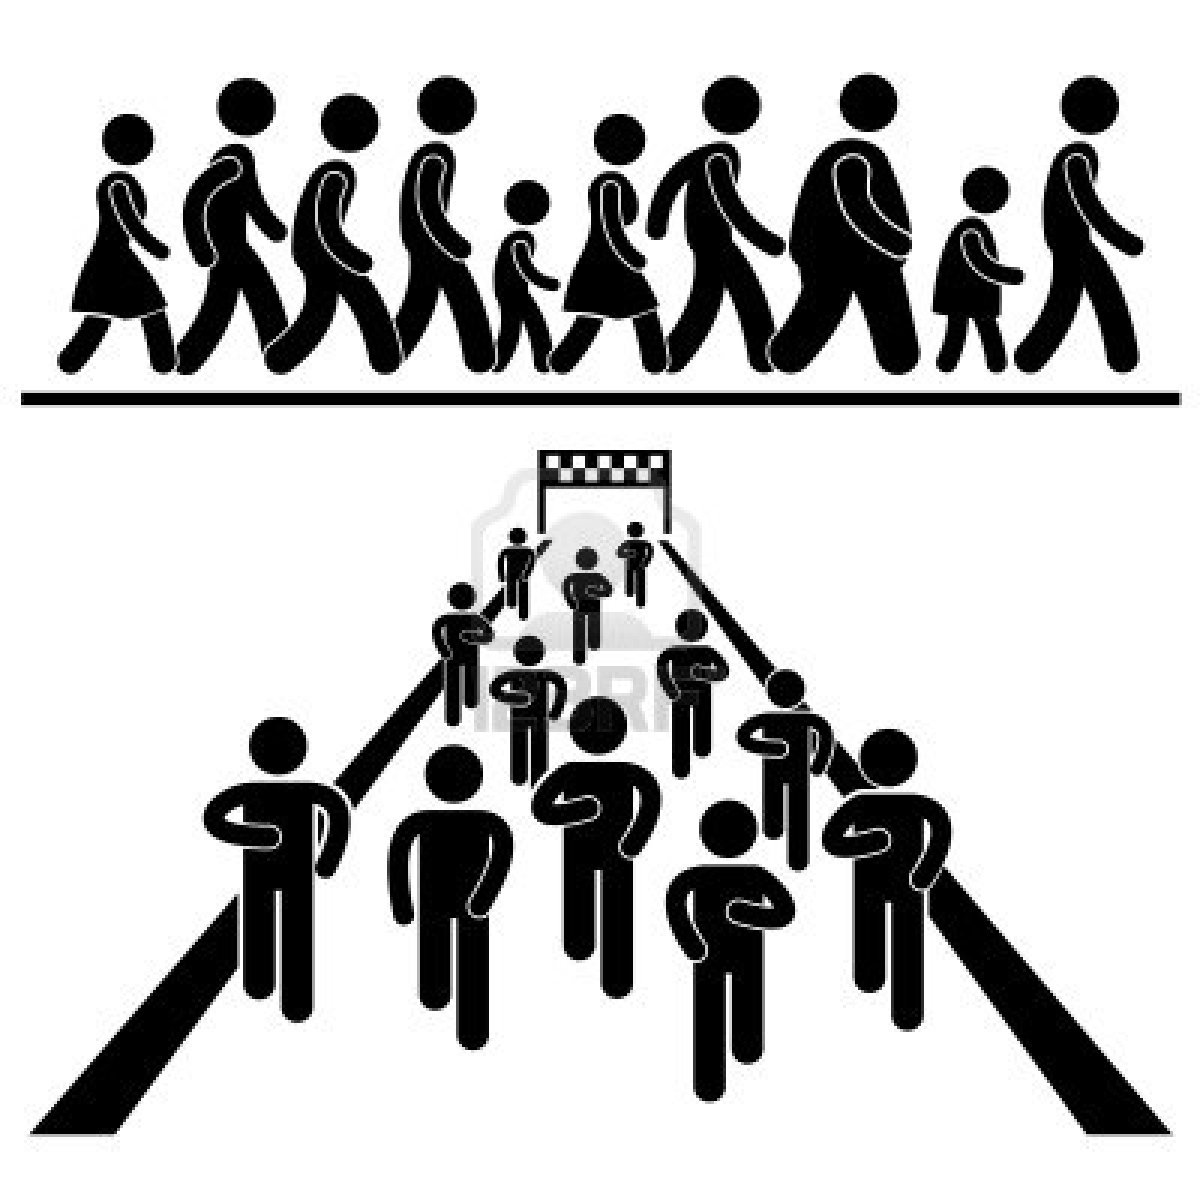 Crowd clipart pictogram Symbols Symbols this Graphic on